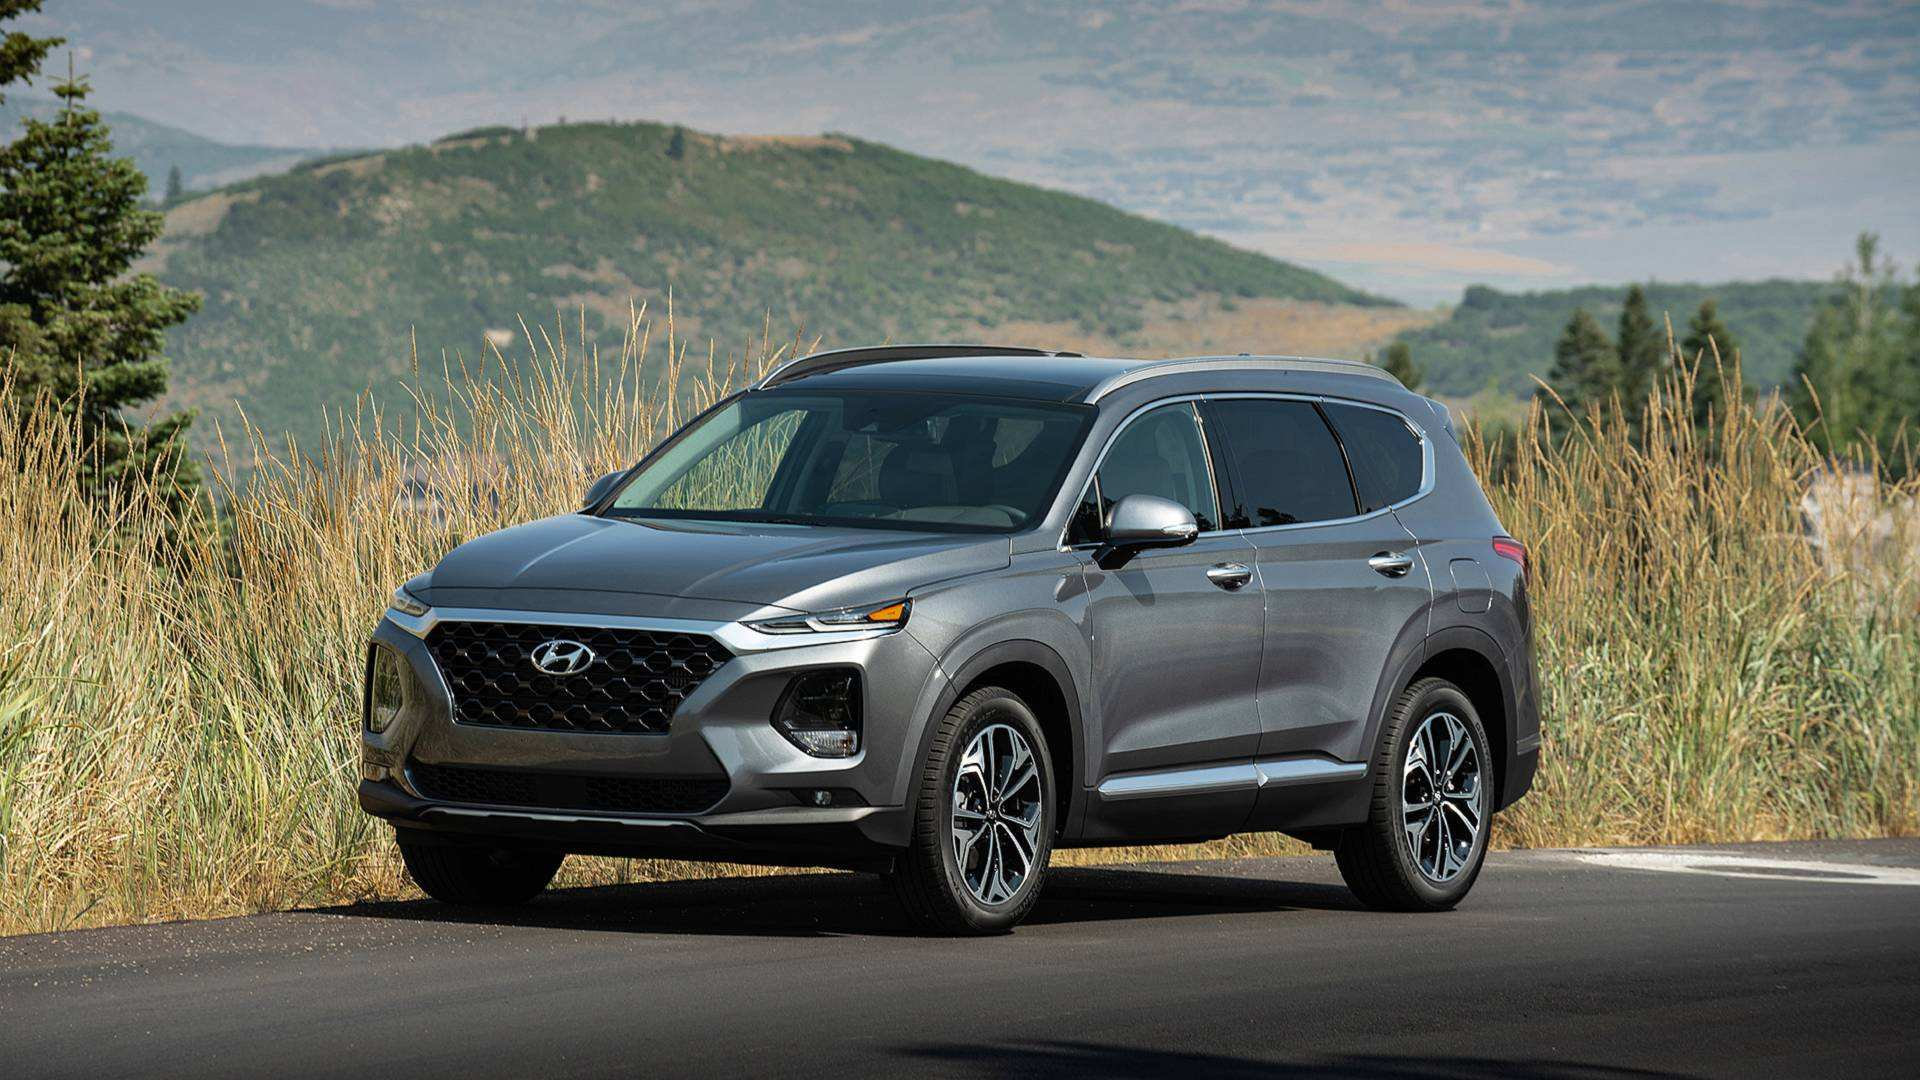 61 New 2019 Hyundai Santa Fe Price And Release Date